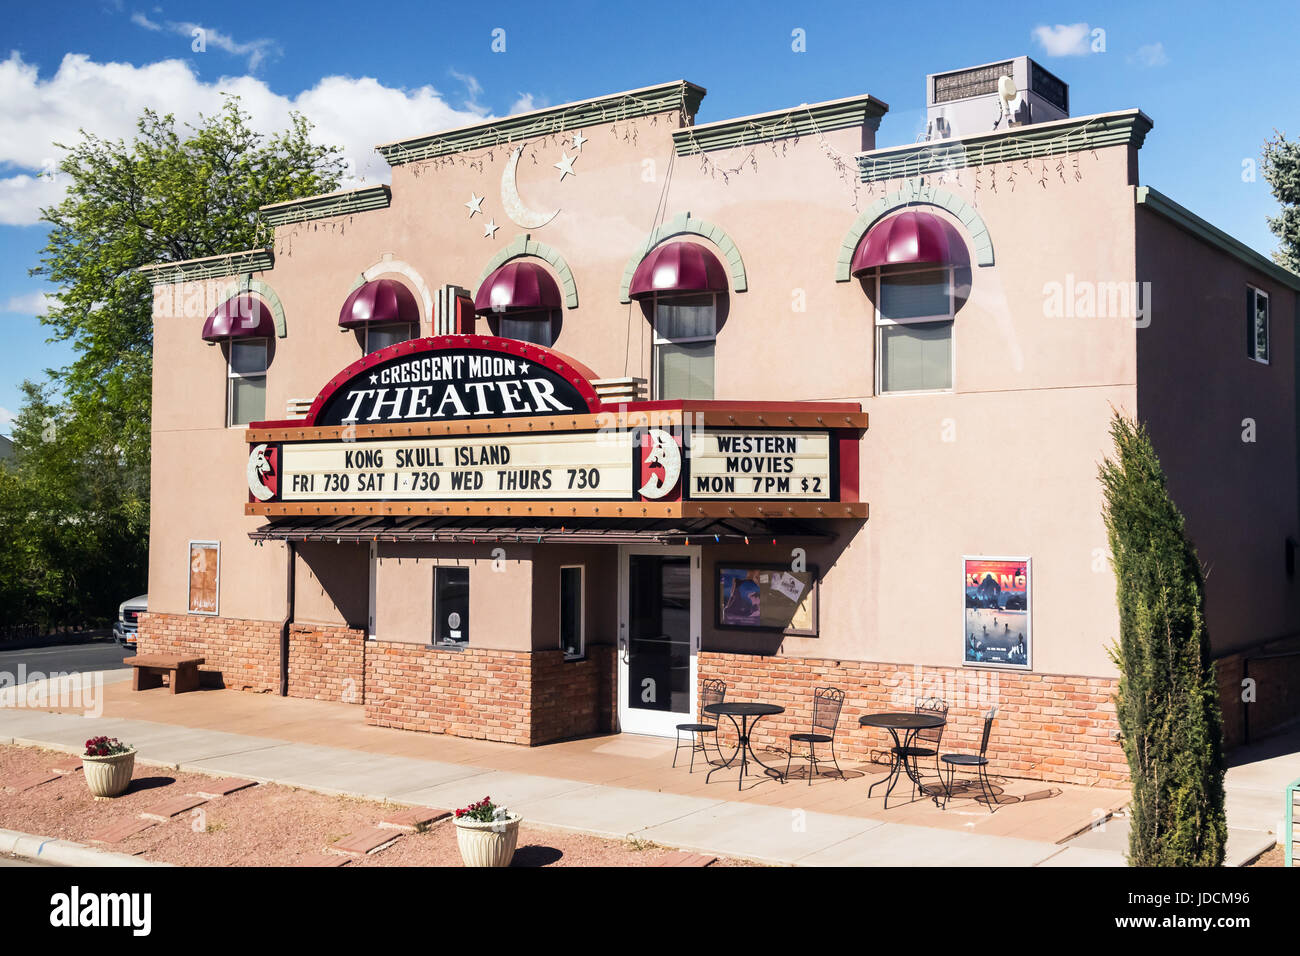 Crescent Moon Theater, plays box office movies and provides a venue for live performances in Kanab, Utah. USA - Stock Image